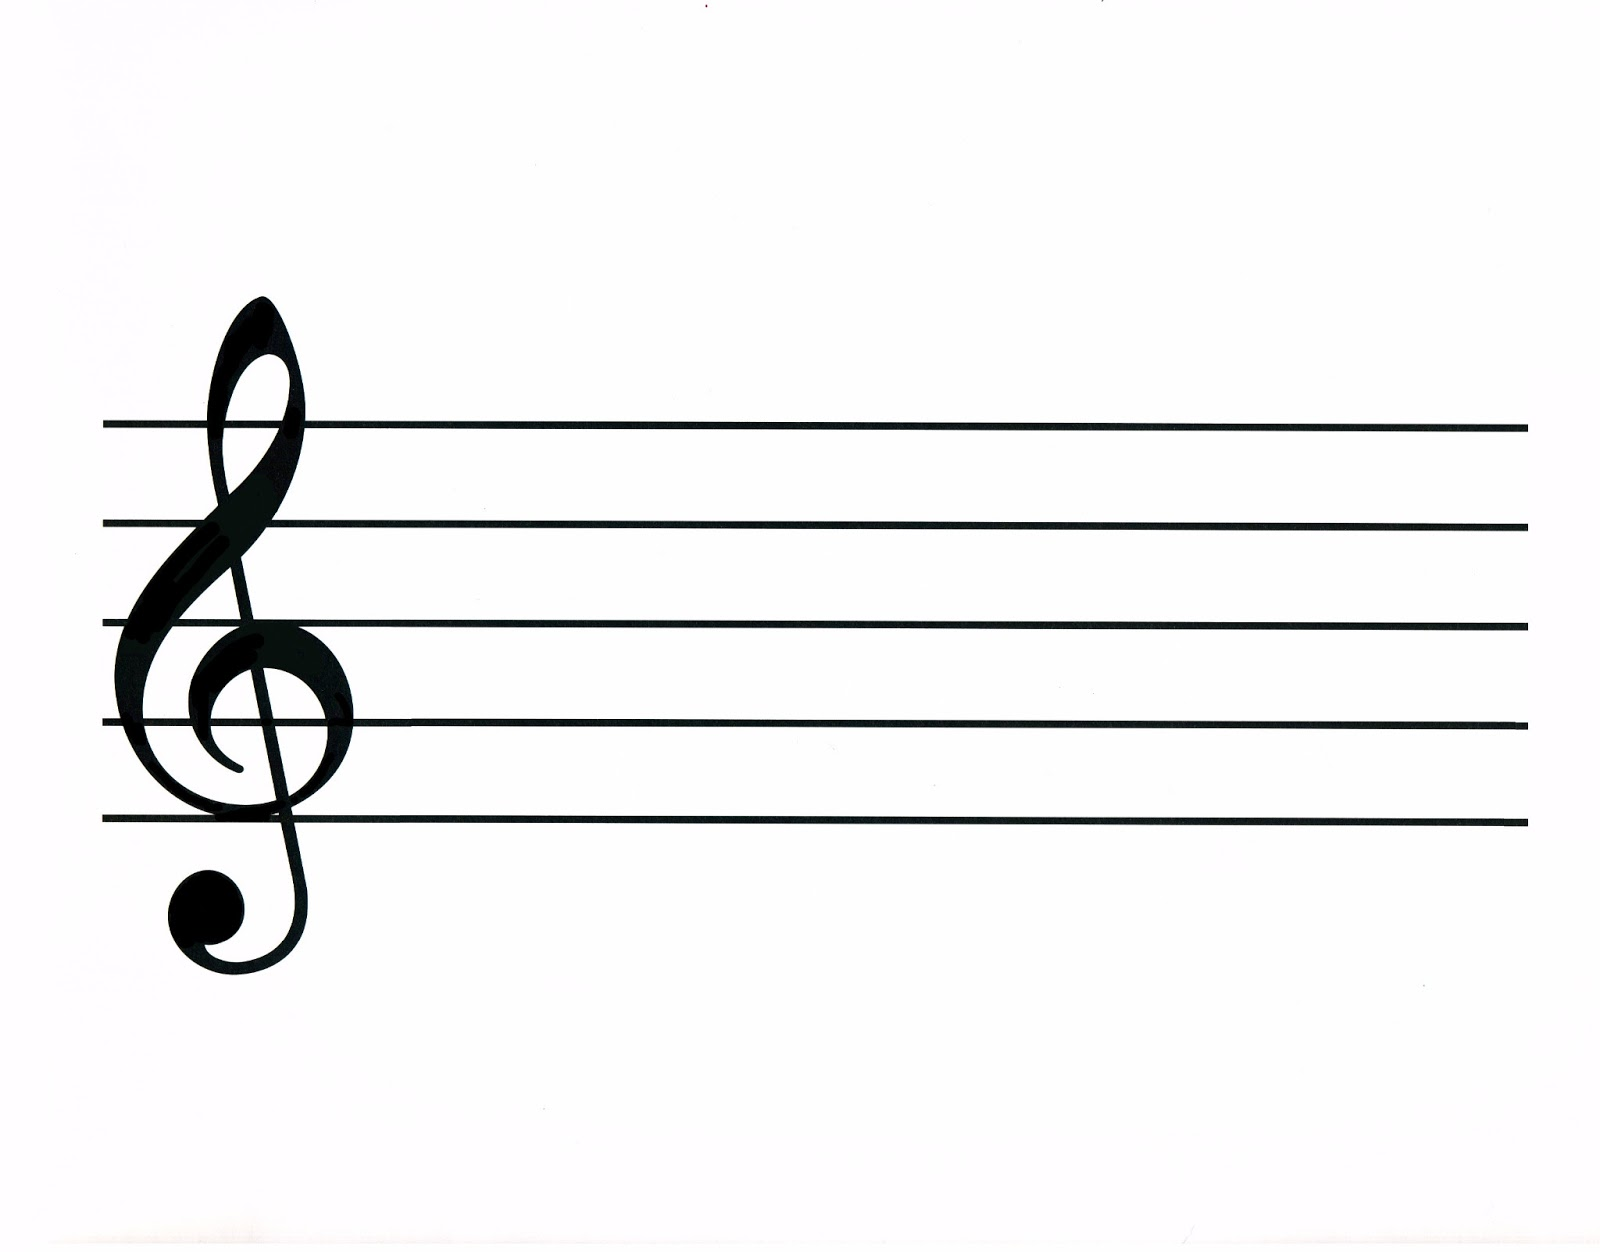 blank bass clef sheet music